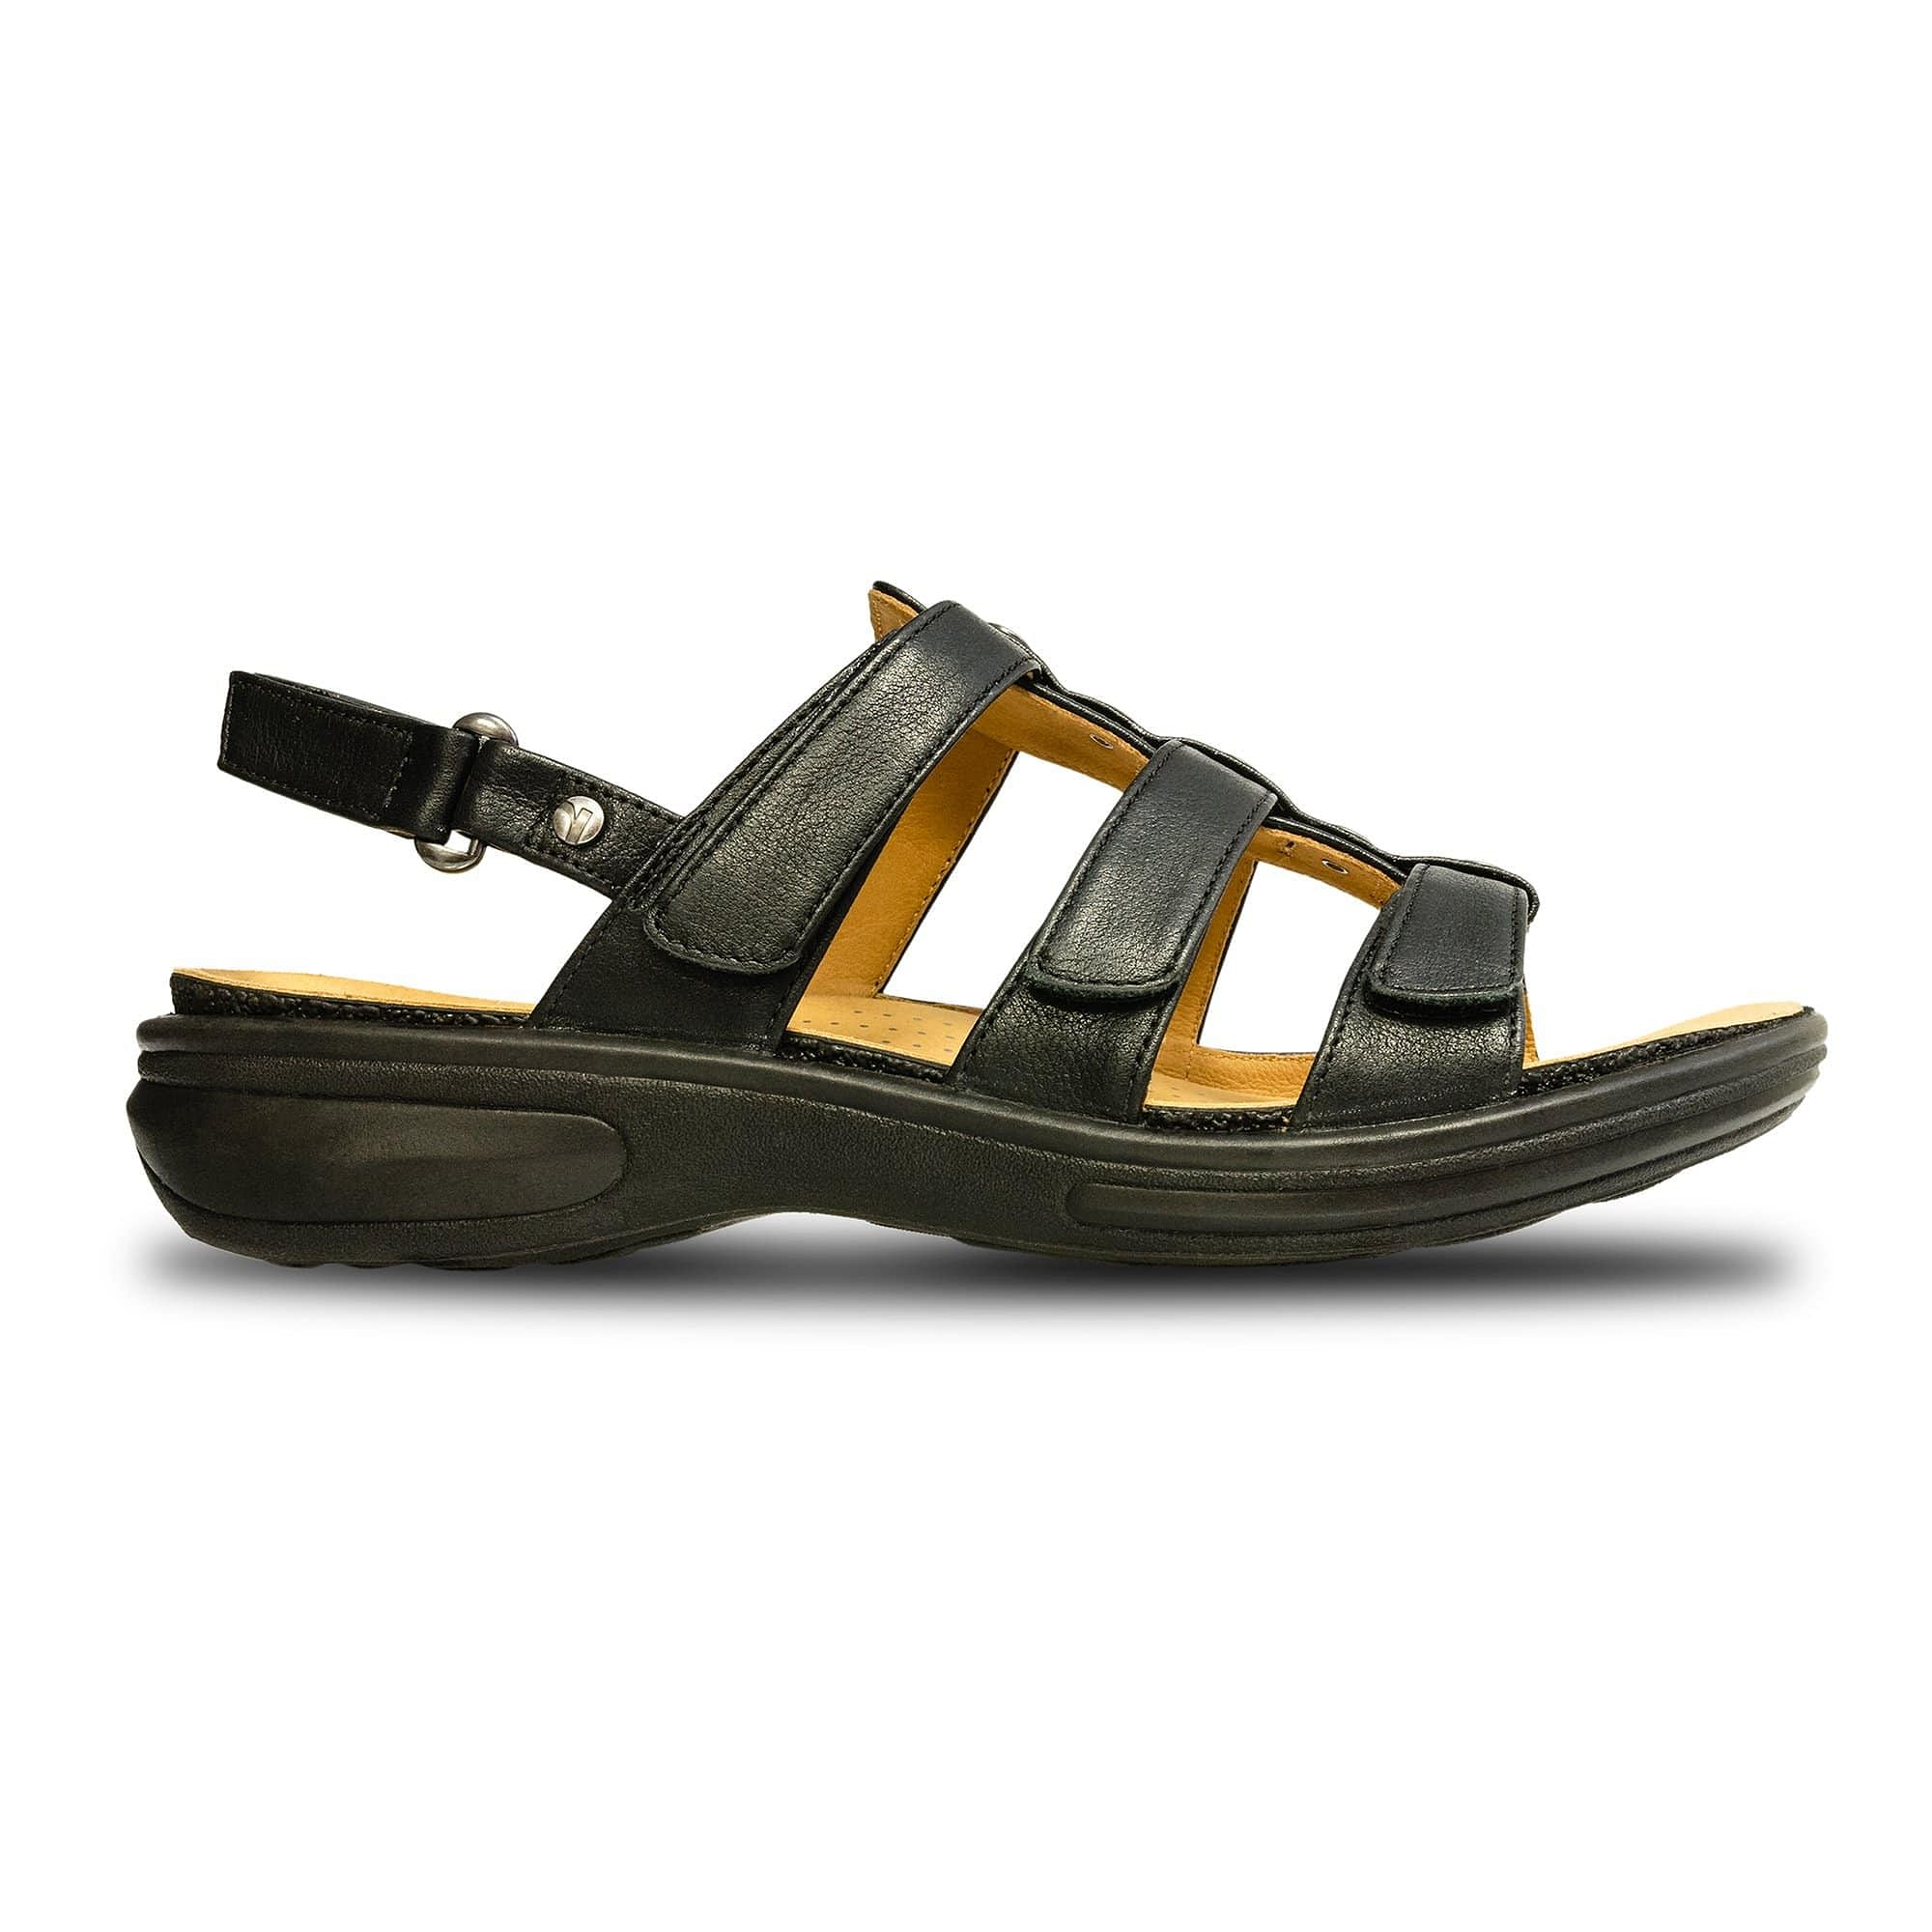 orthotic shoes and sandals